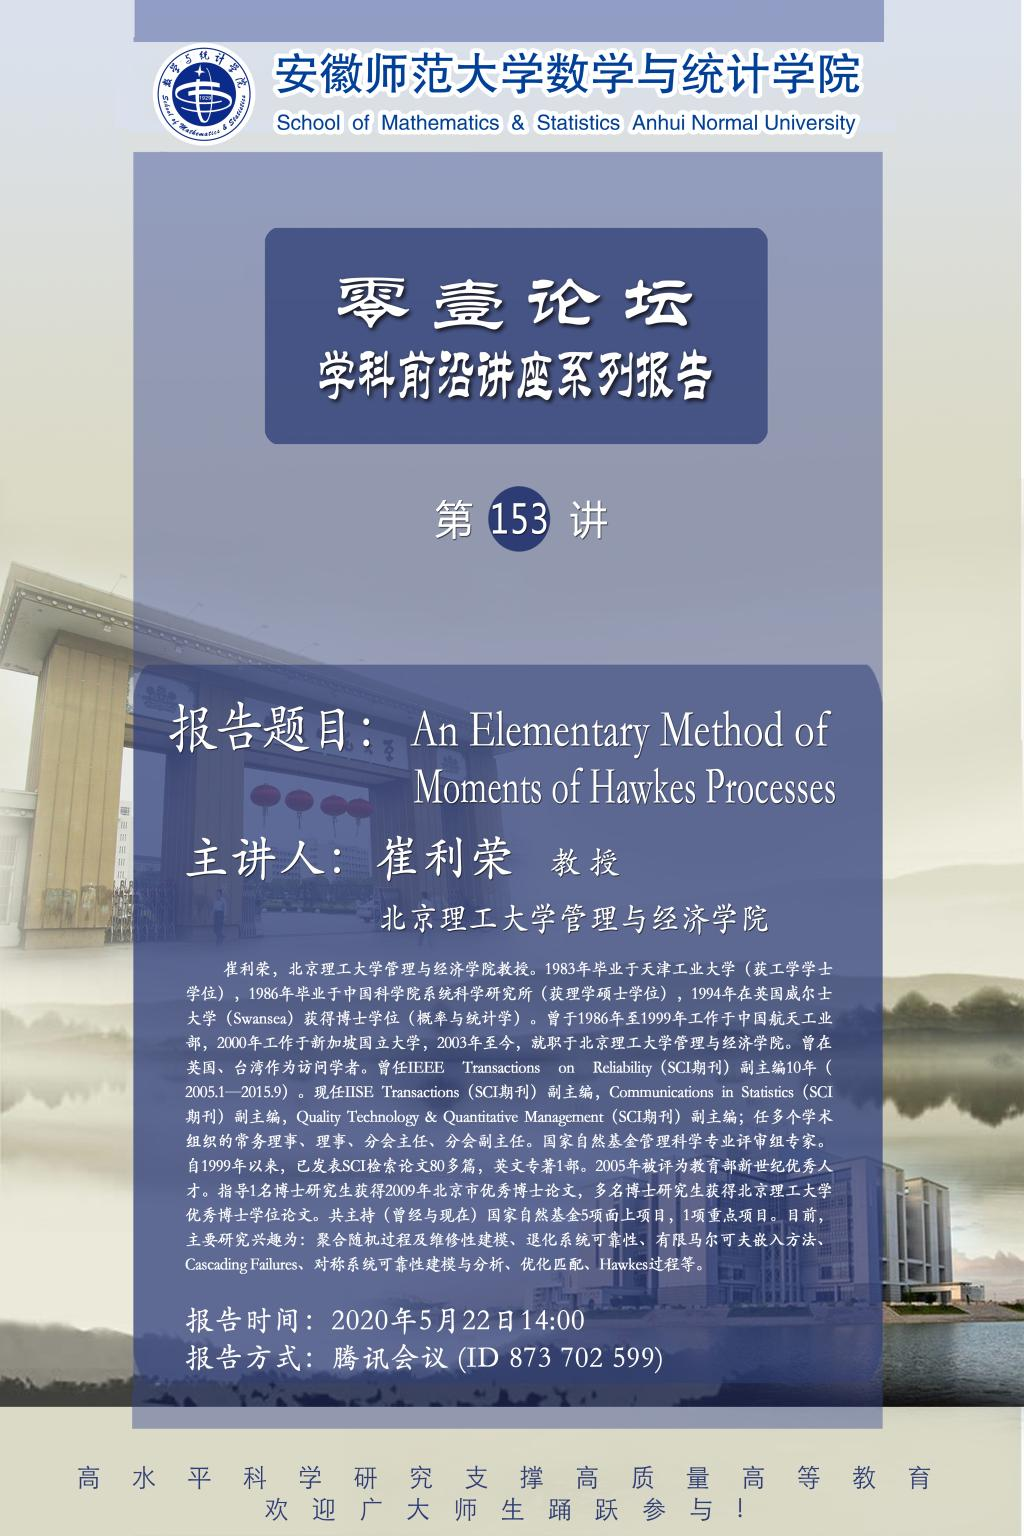 【学术预告】零壹论坛第153讲: An Elementary Method of Moments of Hawkes Processes